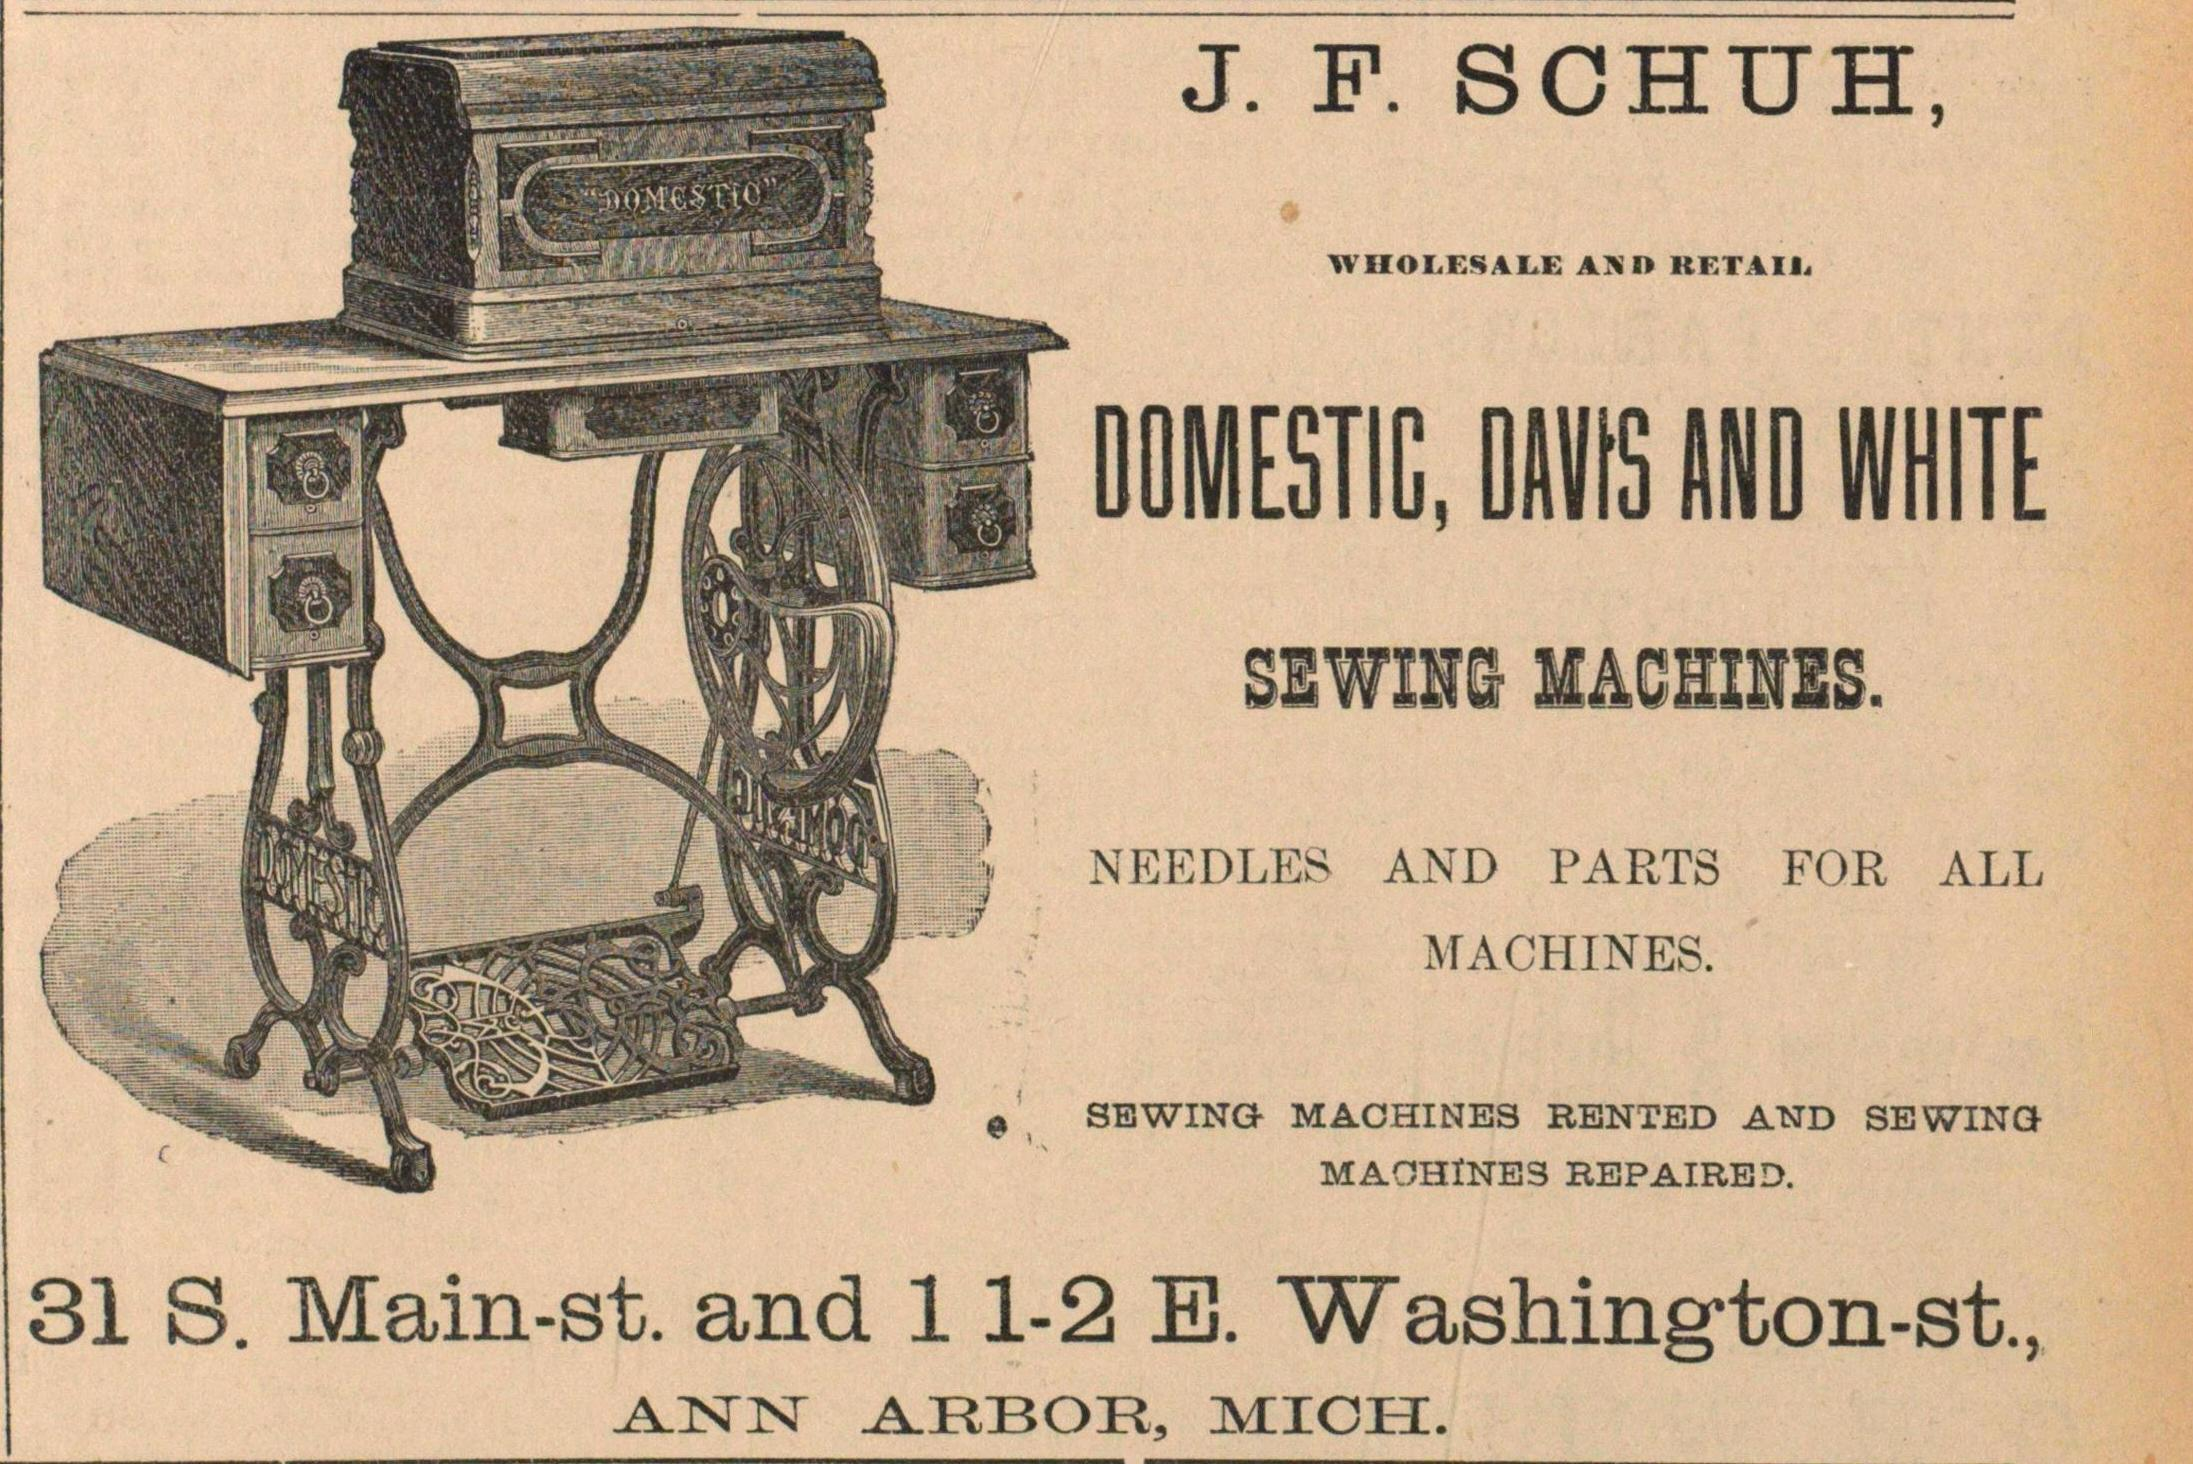 Sewing Machines image